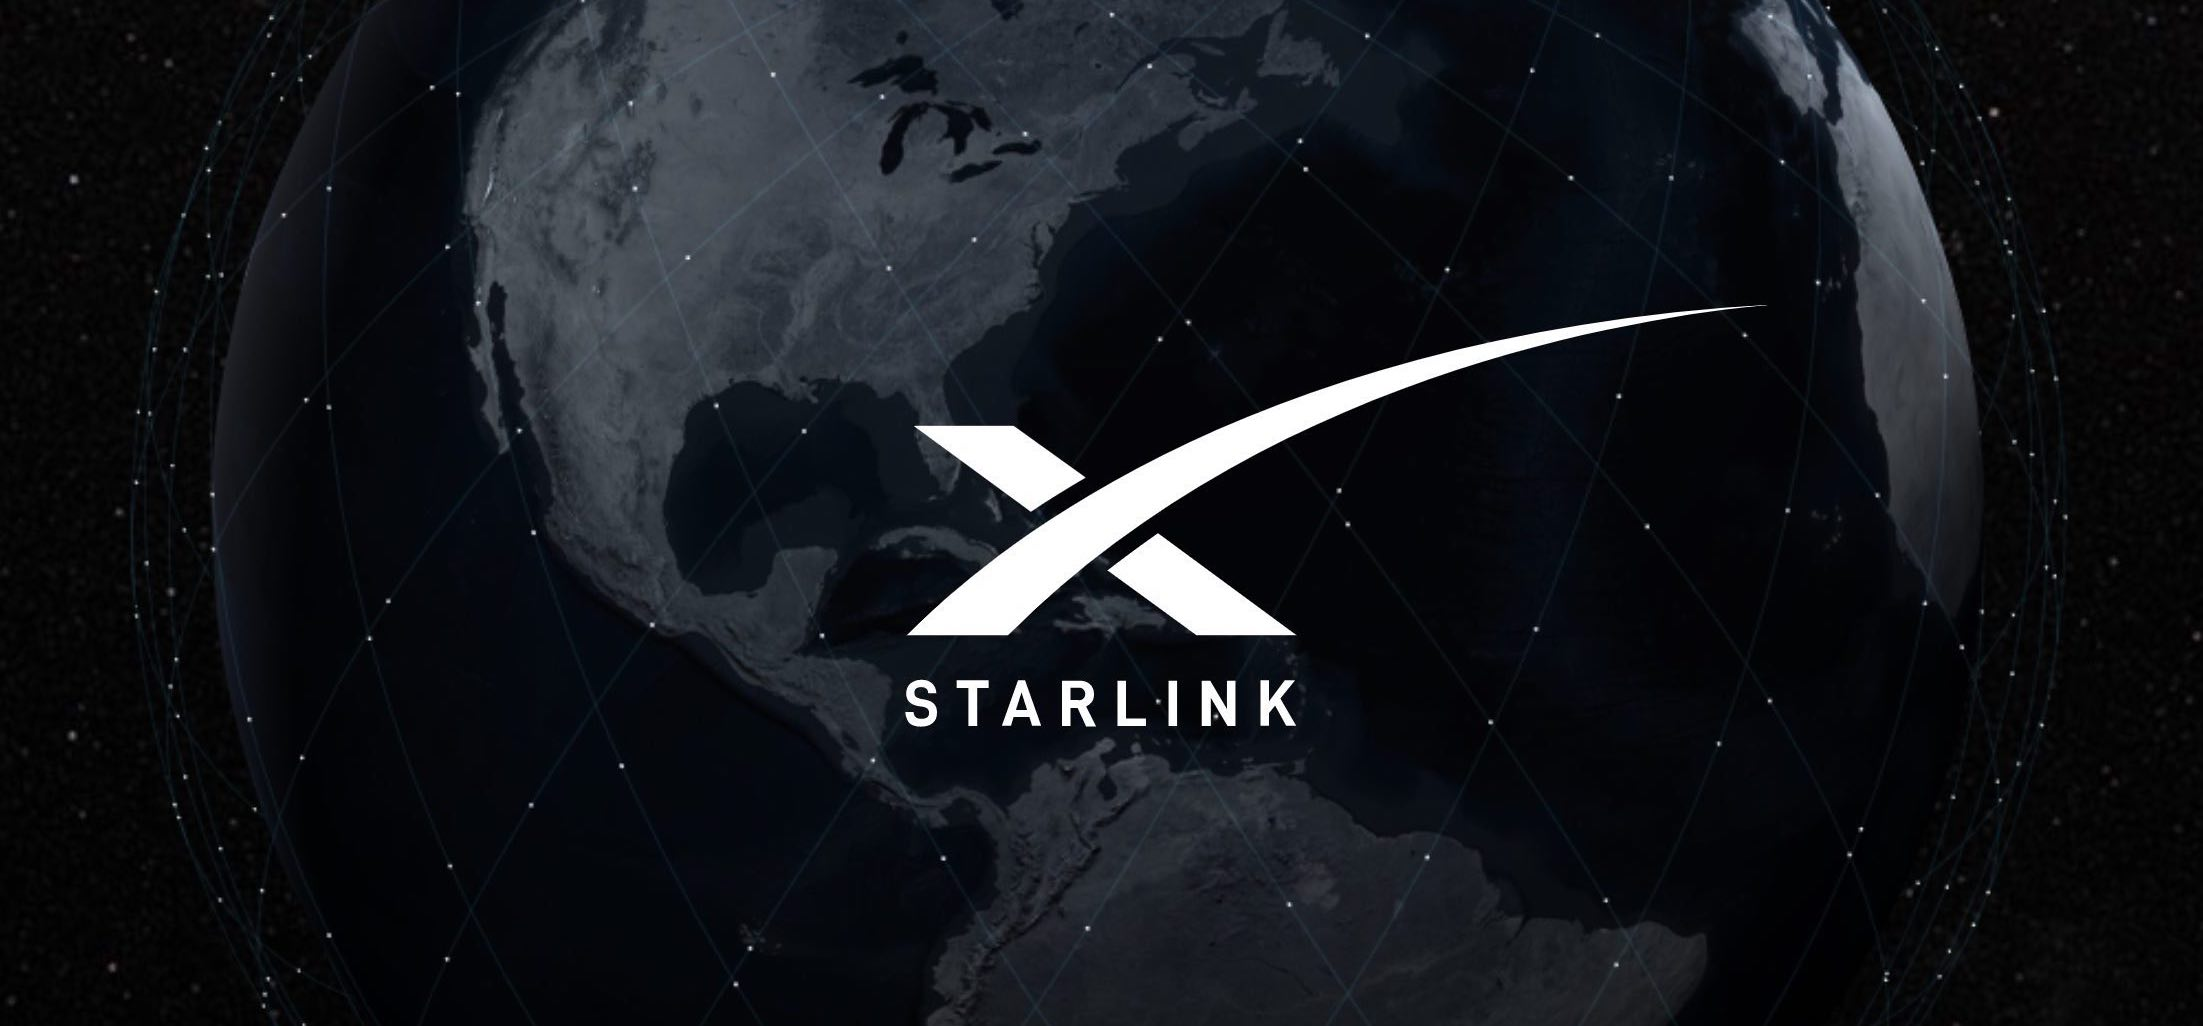 SpaceX Starlink logo